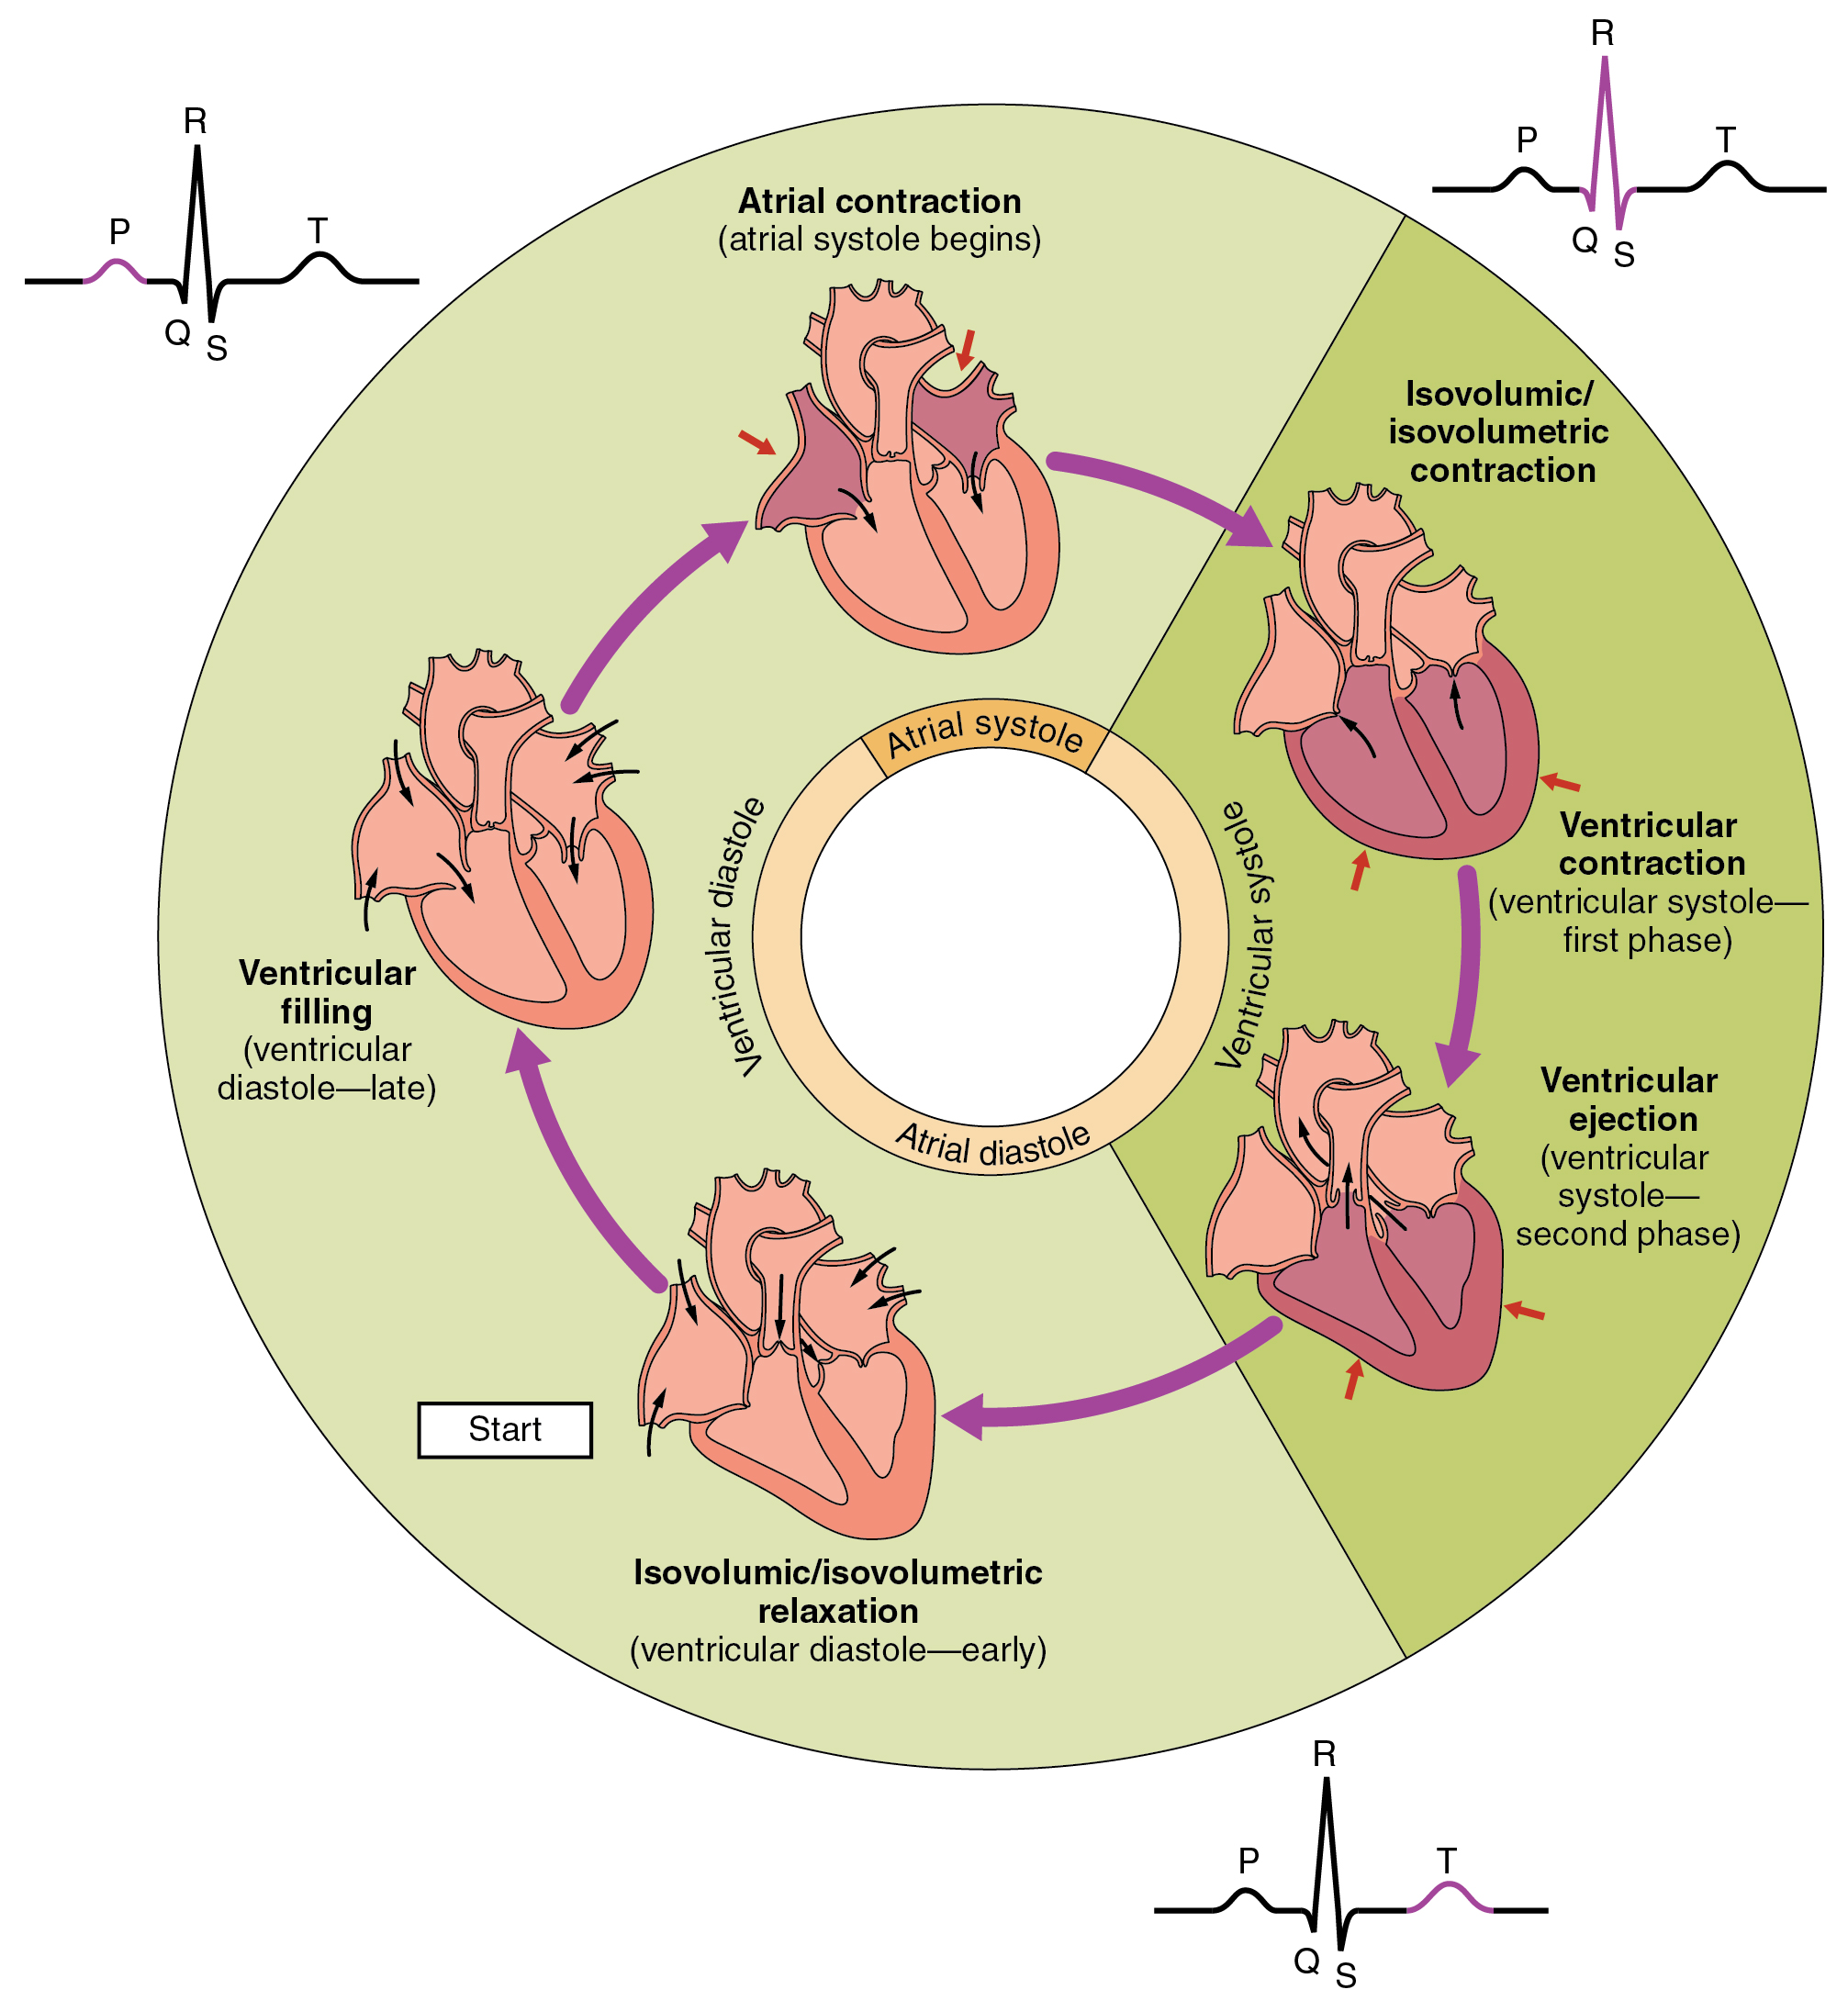 Cardiac Cycle - Human Physiology - OpenStax CNX